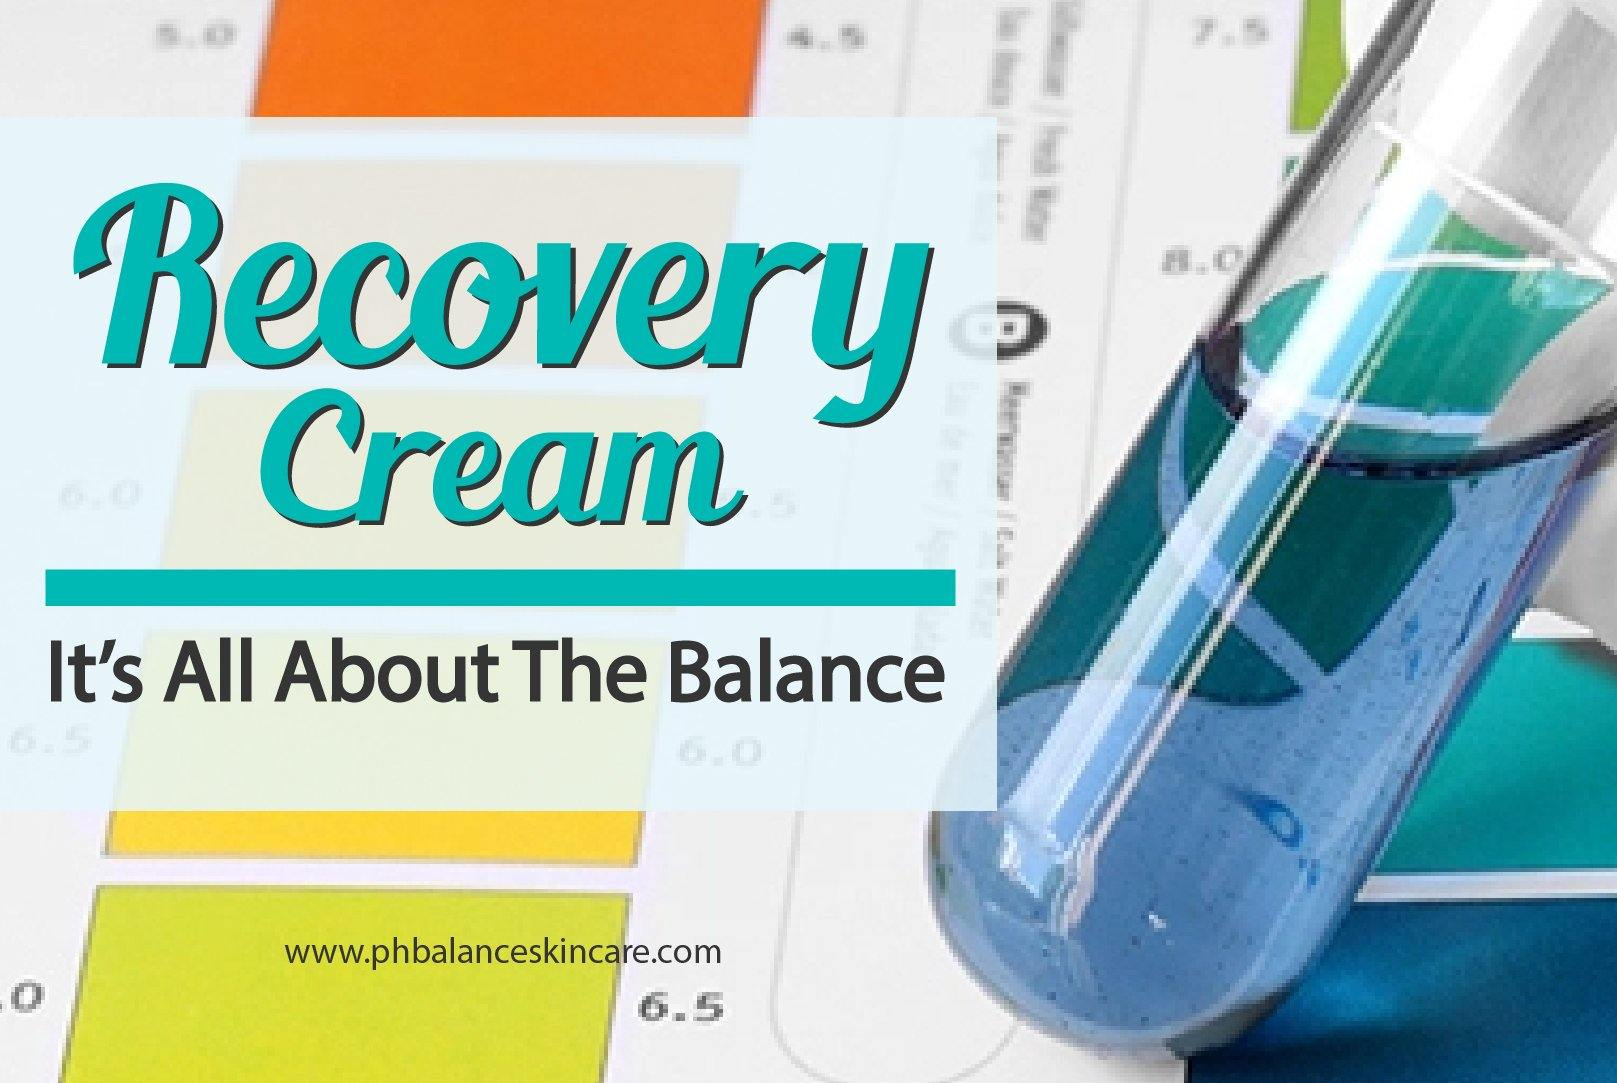 Recovery Cream: It's All About The Balance, recovery cream, eczema cream, psoriasis cream, rash cream, sensitive skin, skin cancer, ph balance cream, ph balance skincare